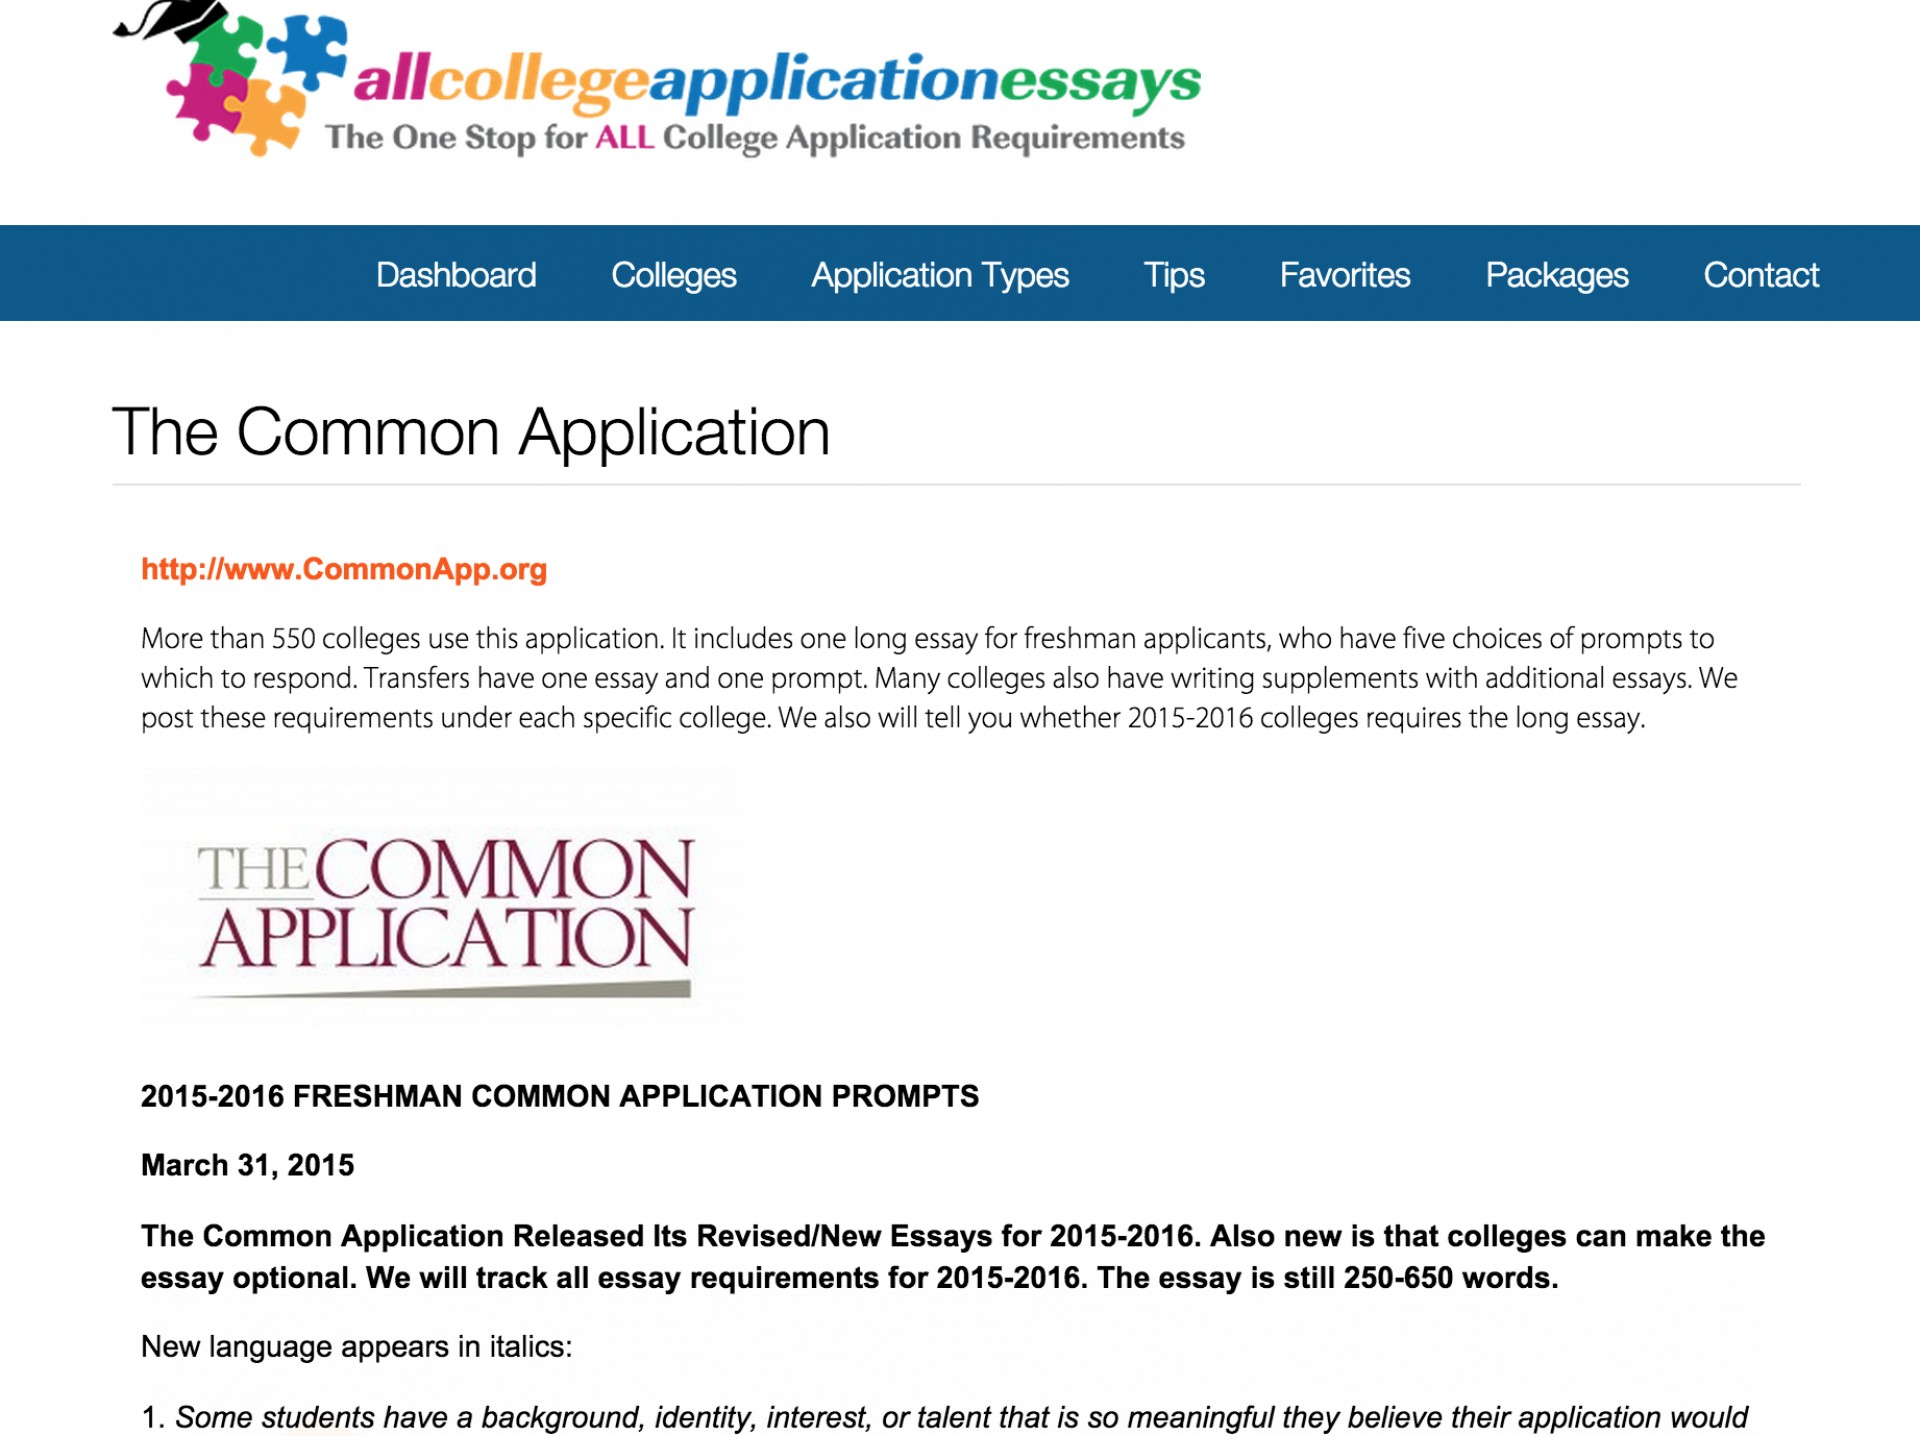 001 Common App Essay Prompts Essays And Commentary All College Topics Screen Shots Rare 2015-16 1920